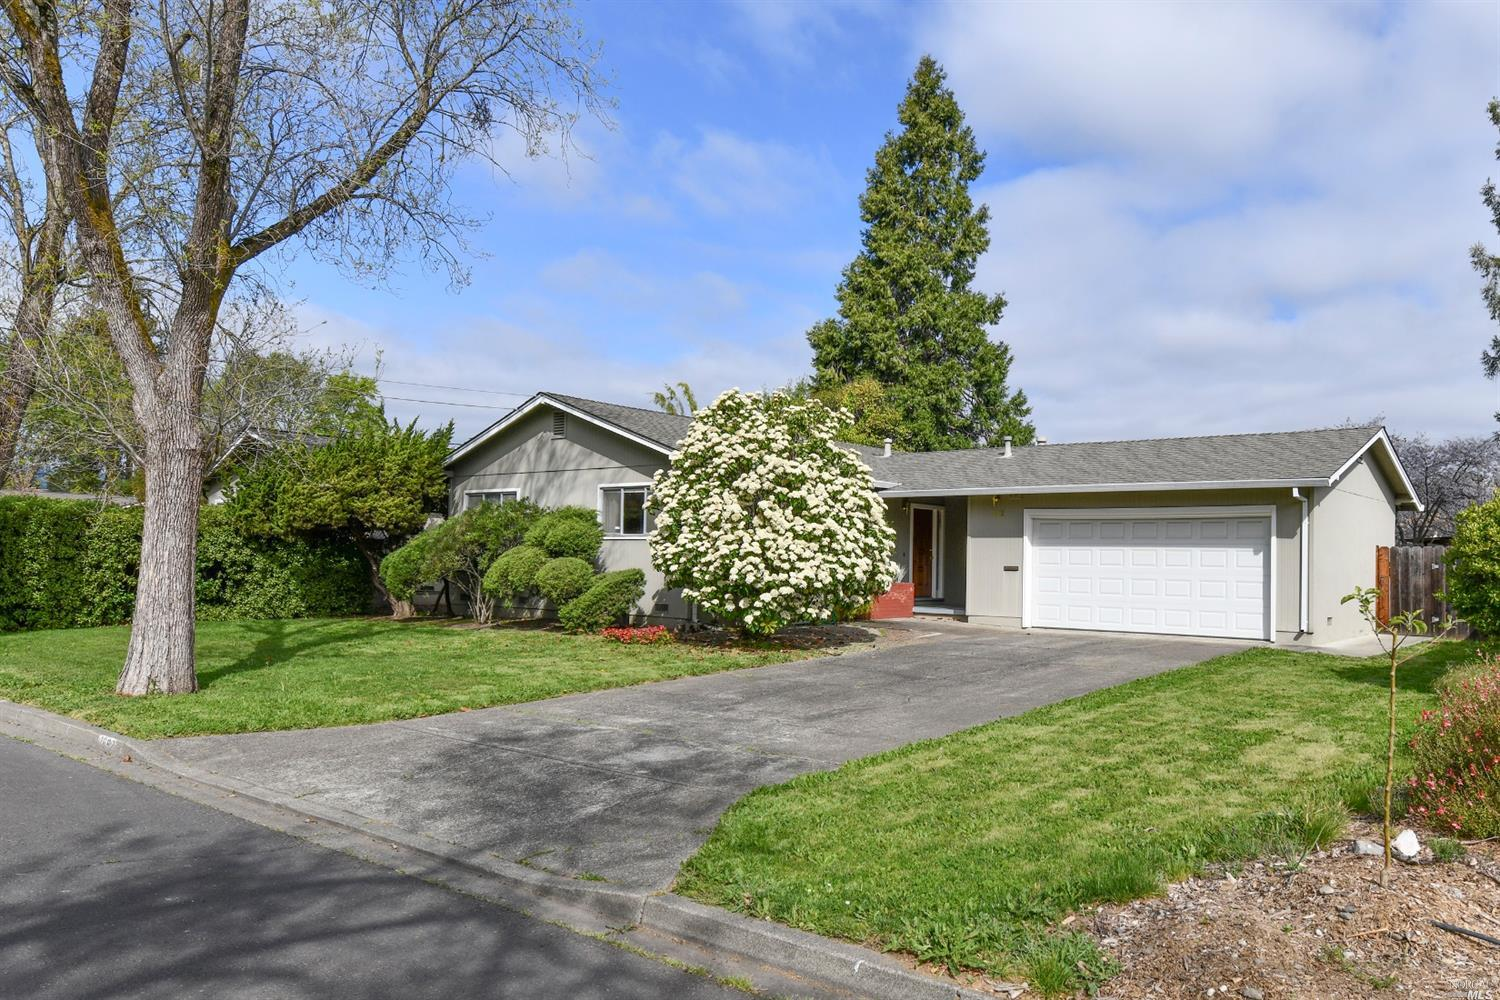 On a quiet street in an established neighborhood, this Well maintained North Napa BelAire home sits